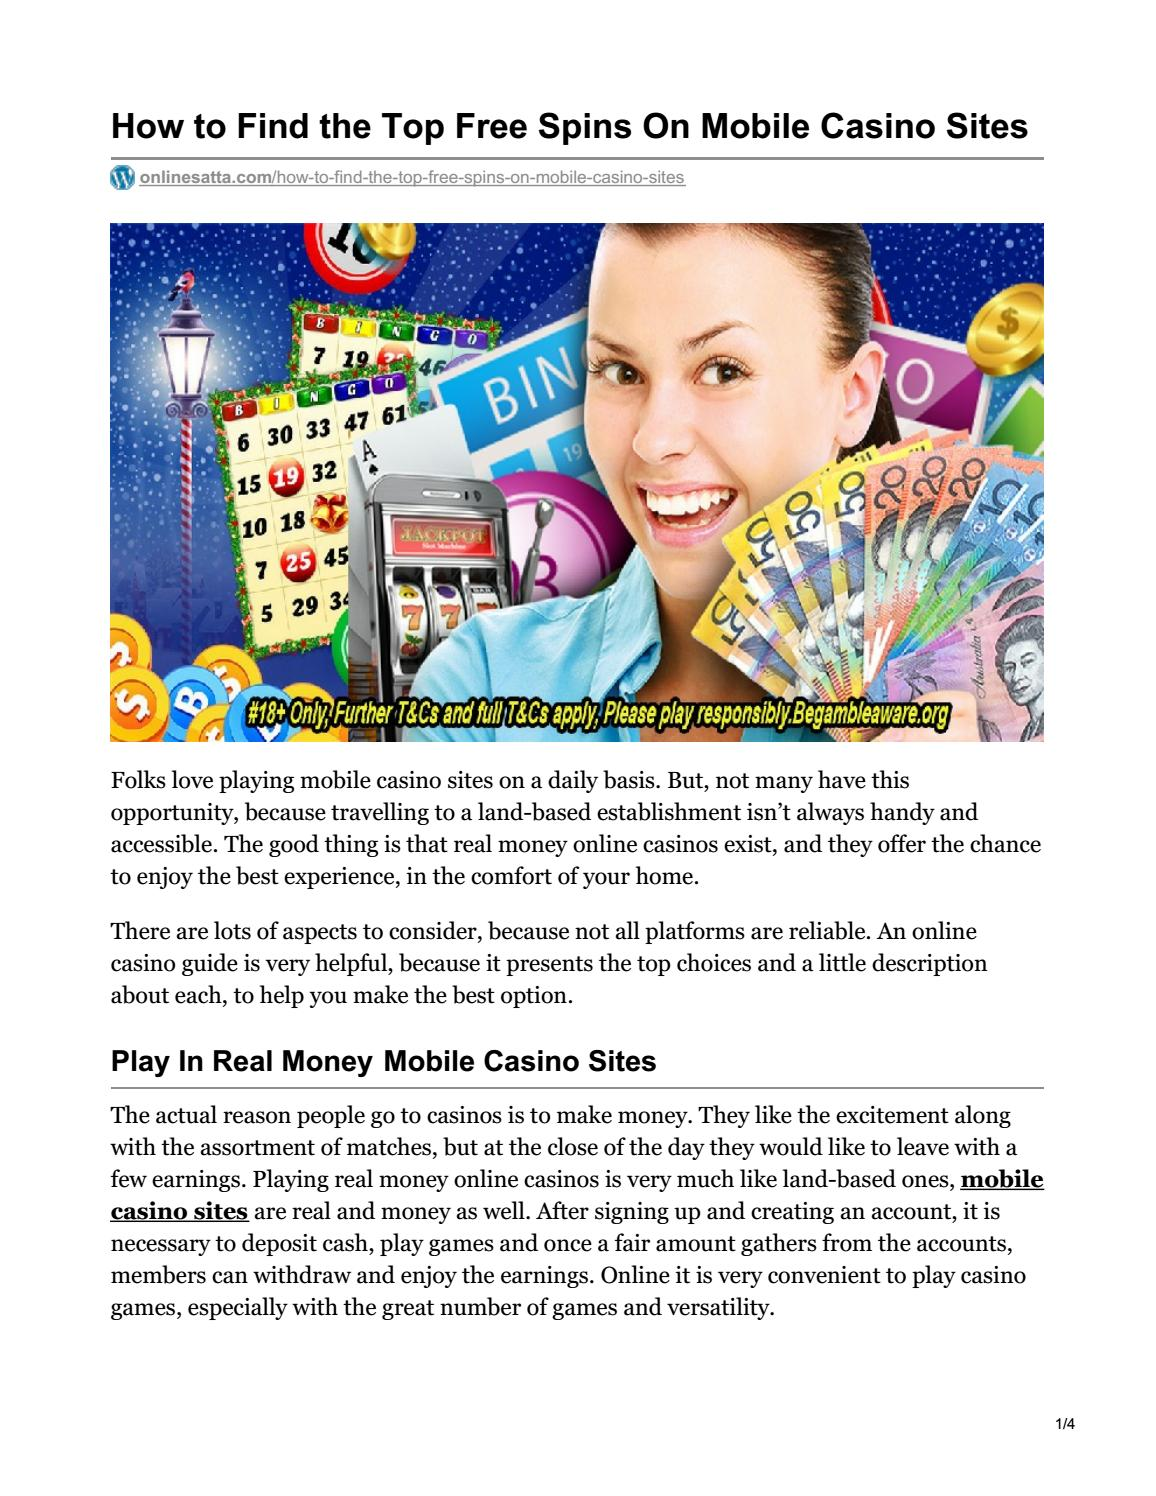 How To Find The Top Free Spins On Mobile Casino Sites By Mohit Sharma Issuu